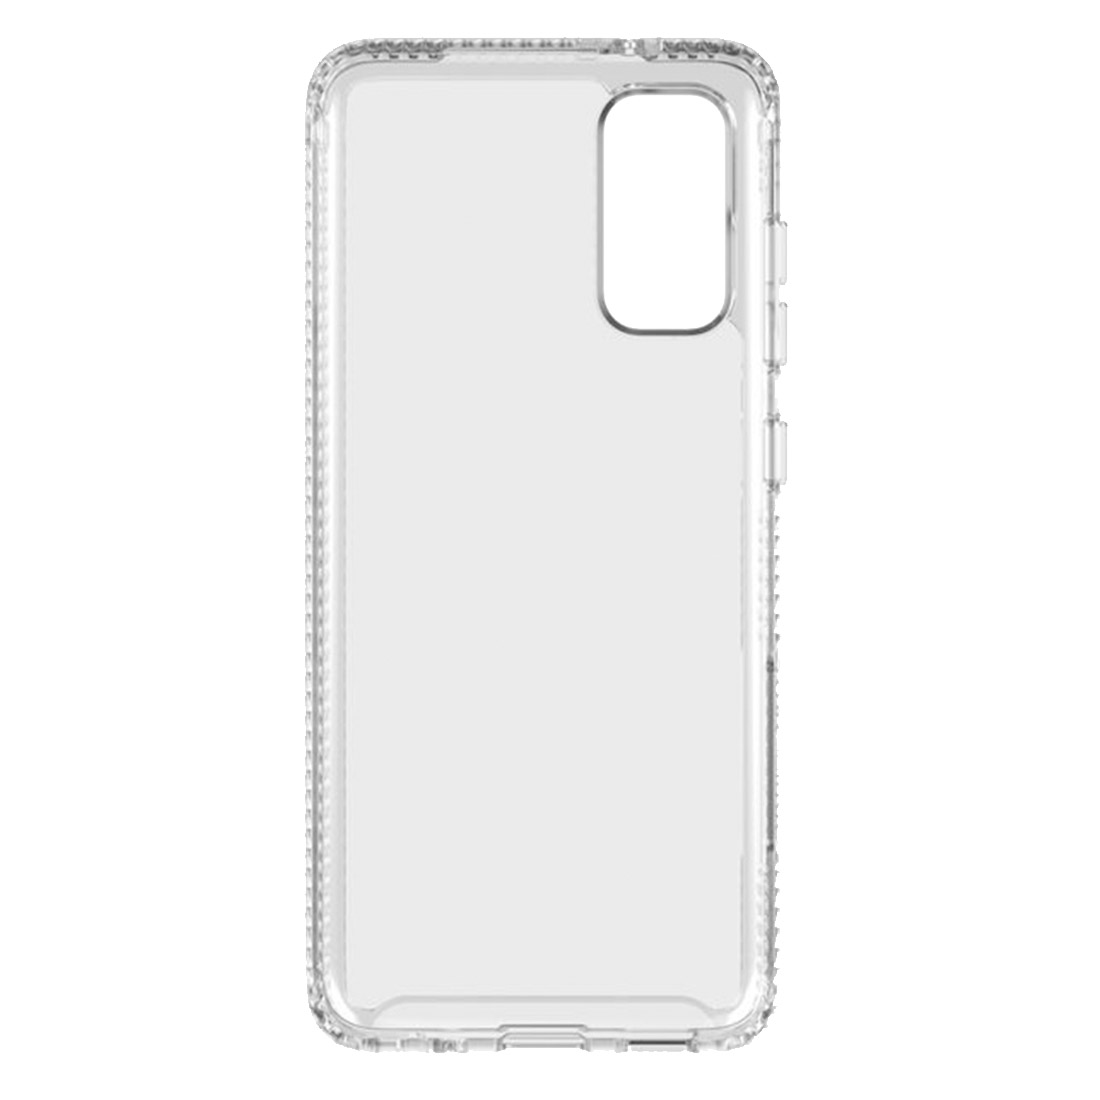 Tech21 Pure Clear Case for Samsung Galaxy S20 T21-7660 - Clear